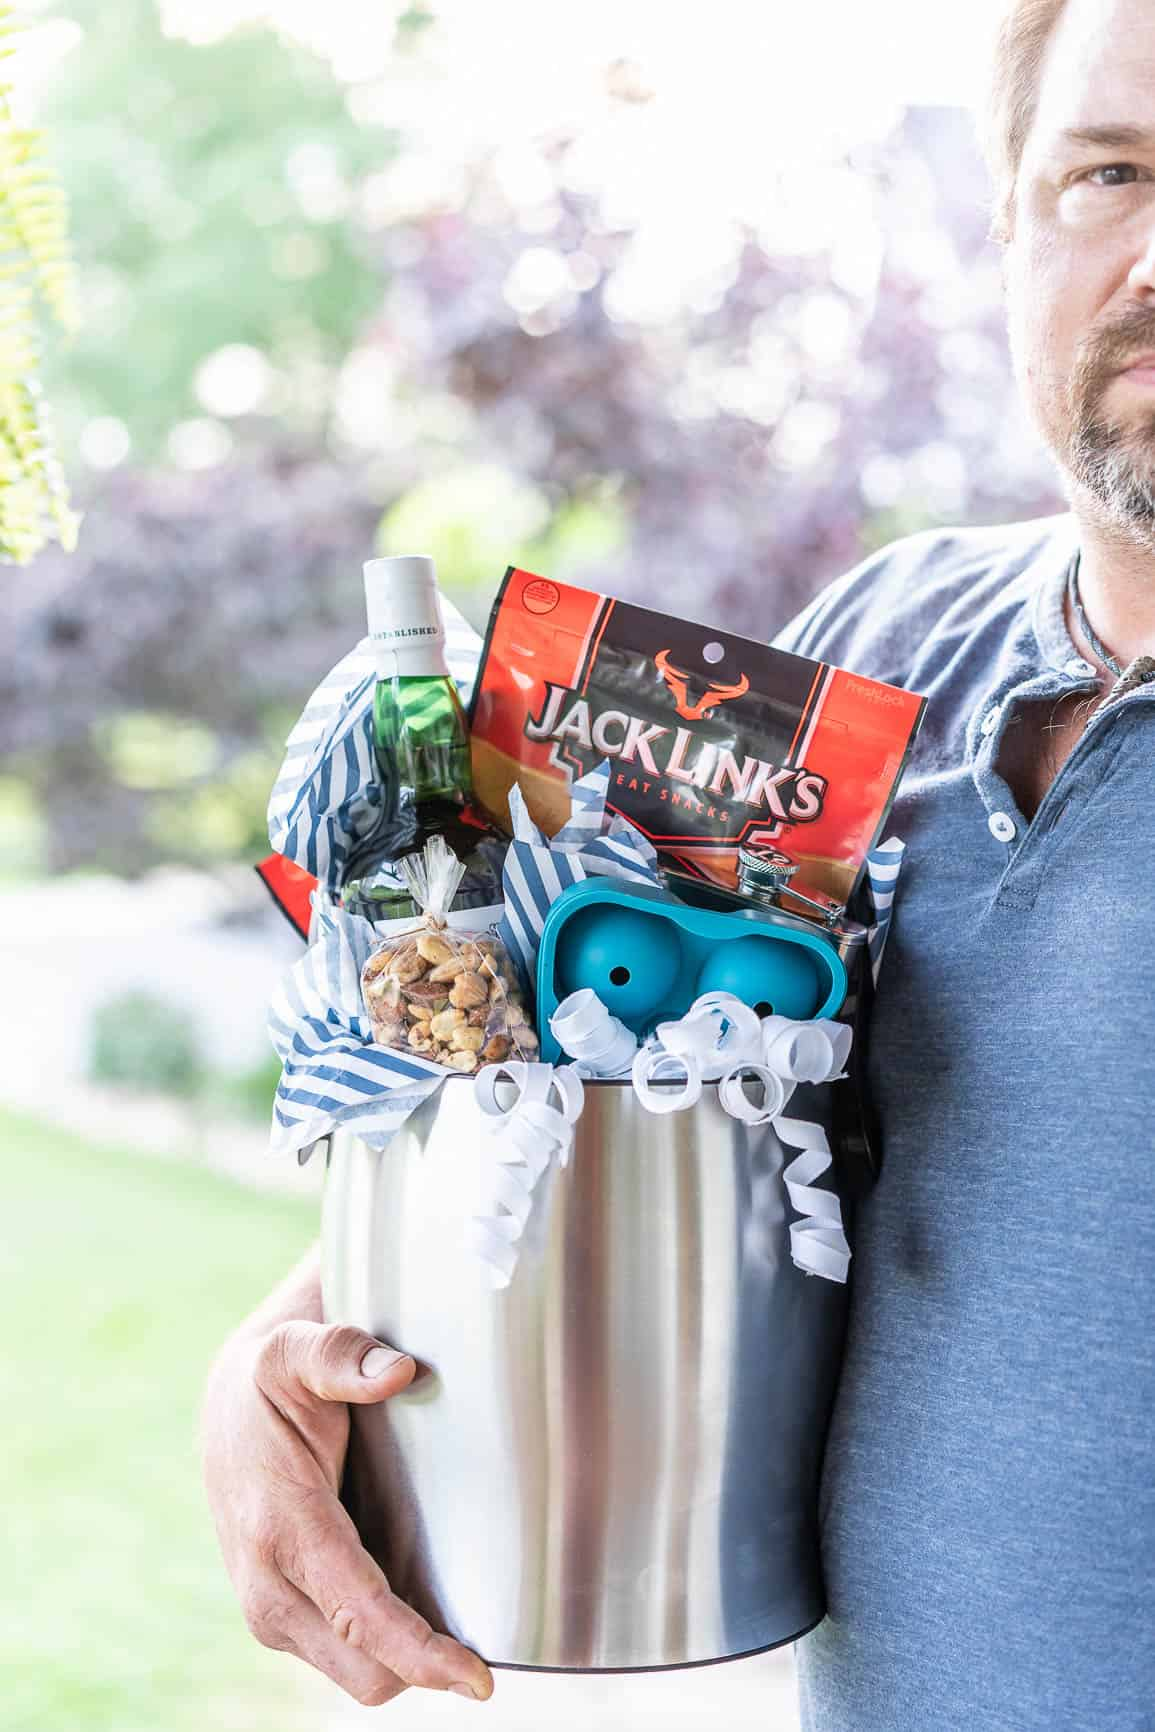 man holding a gift basket with scotch whiskey drinking items.